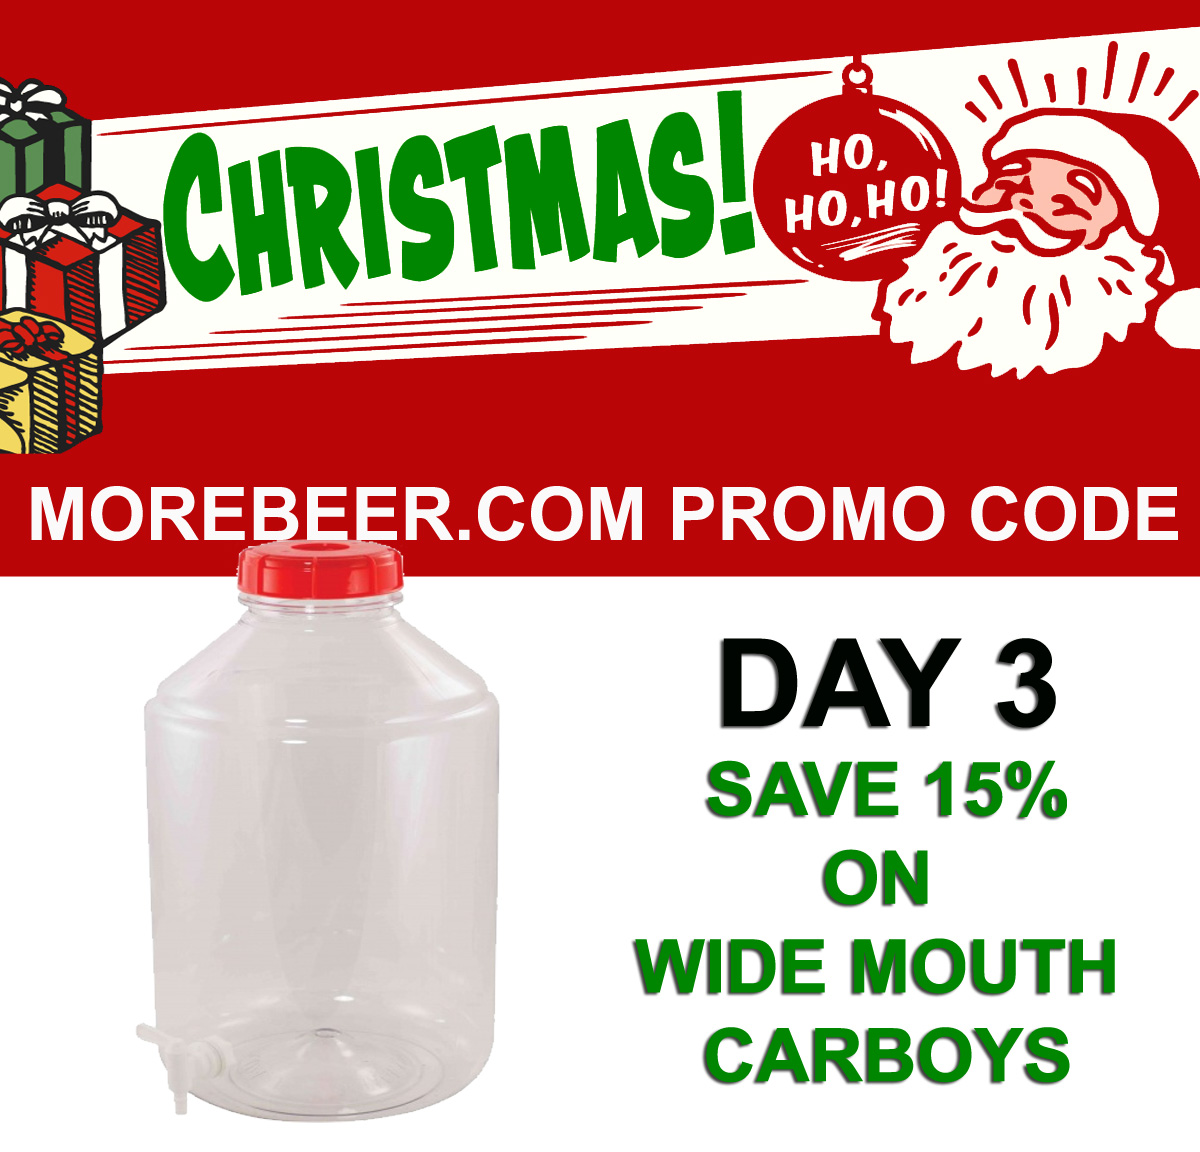 Home Brewer Promo Code for Save 15% On FerMonster Wide Mouth Home Brewing Carboys Coupon Code